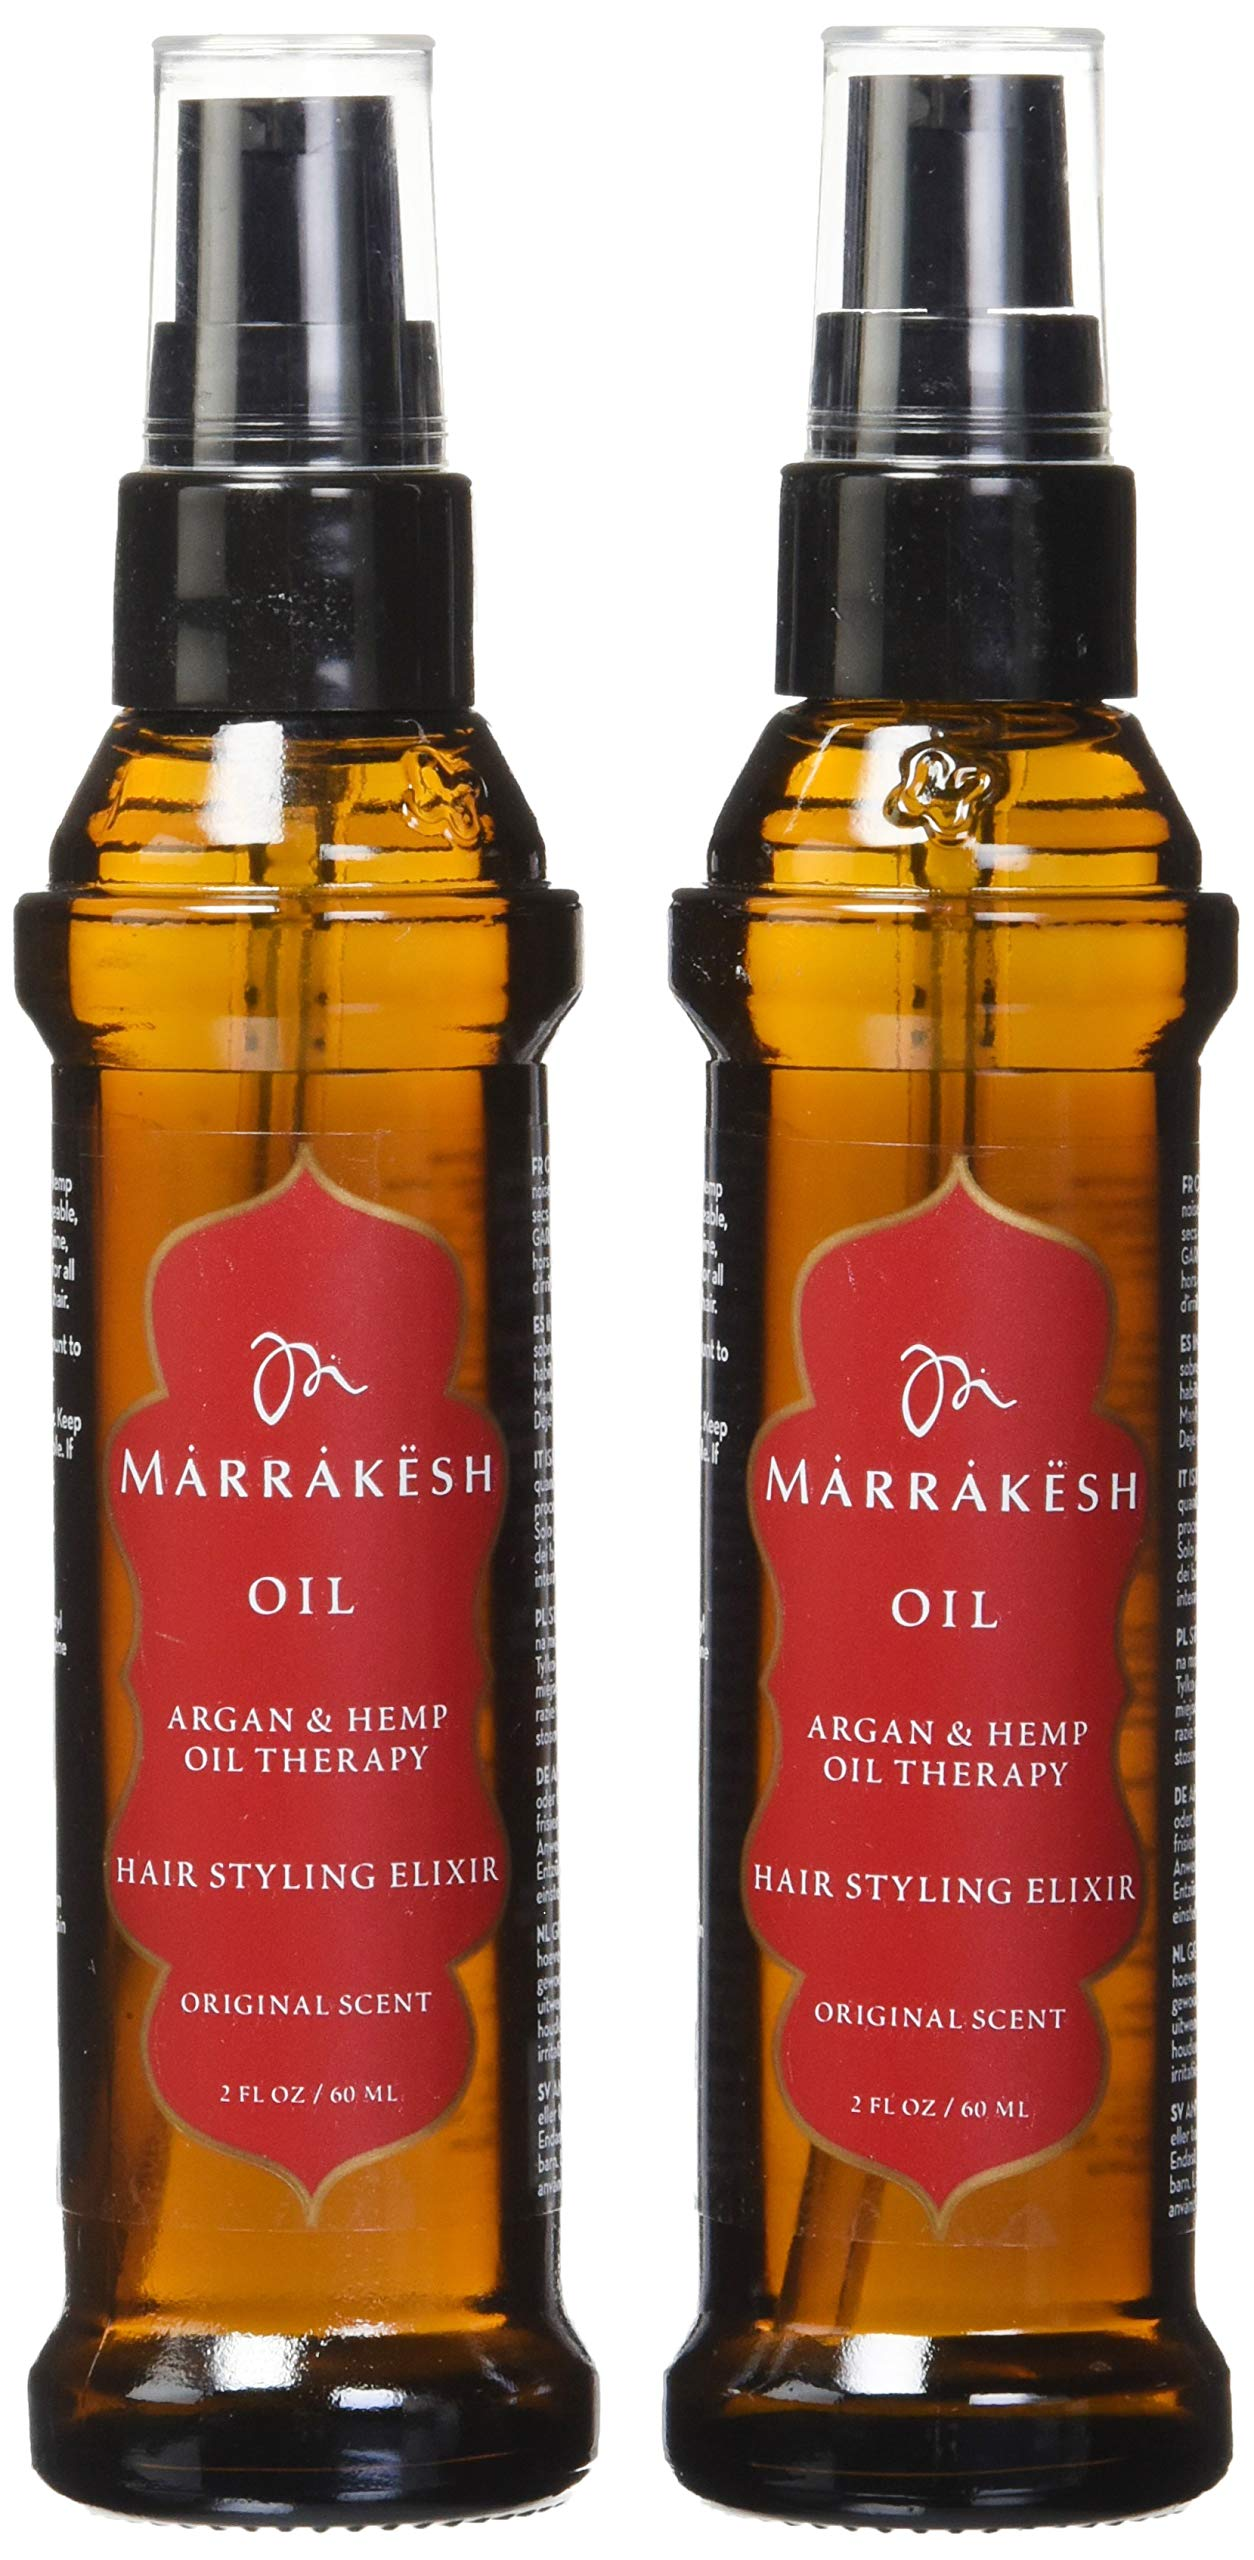 MARRAKESH Oil Hair Styling Elixir, Original Scent, 2 Fl. Oz (Pack of 2)